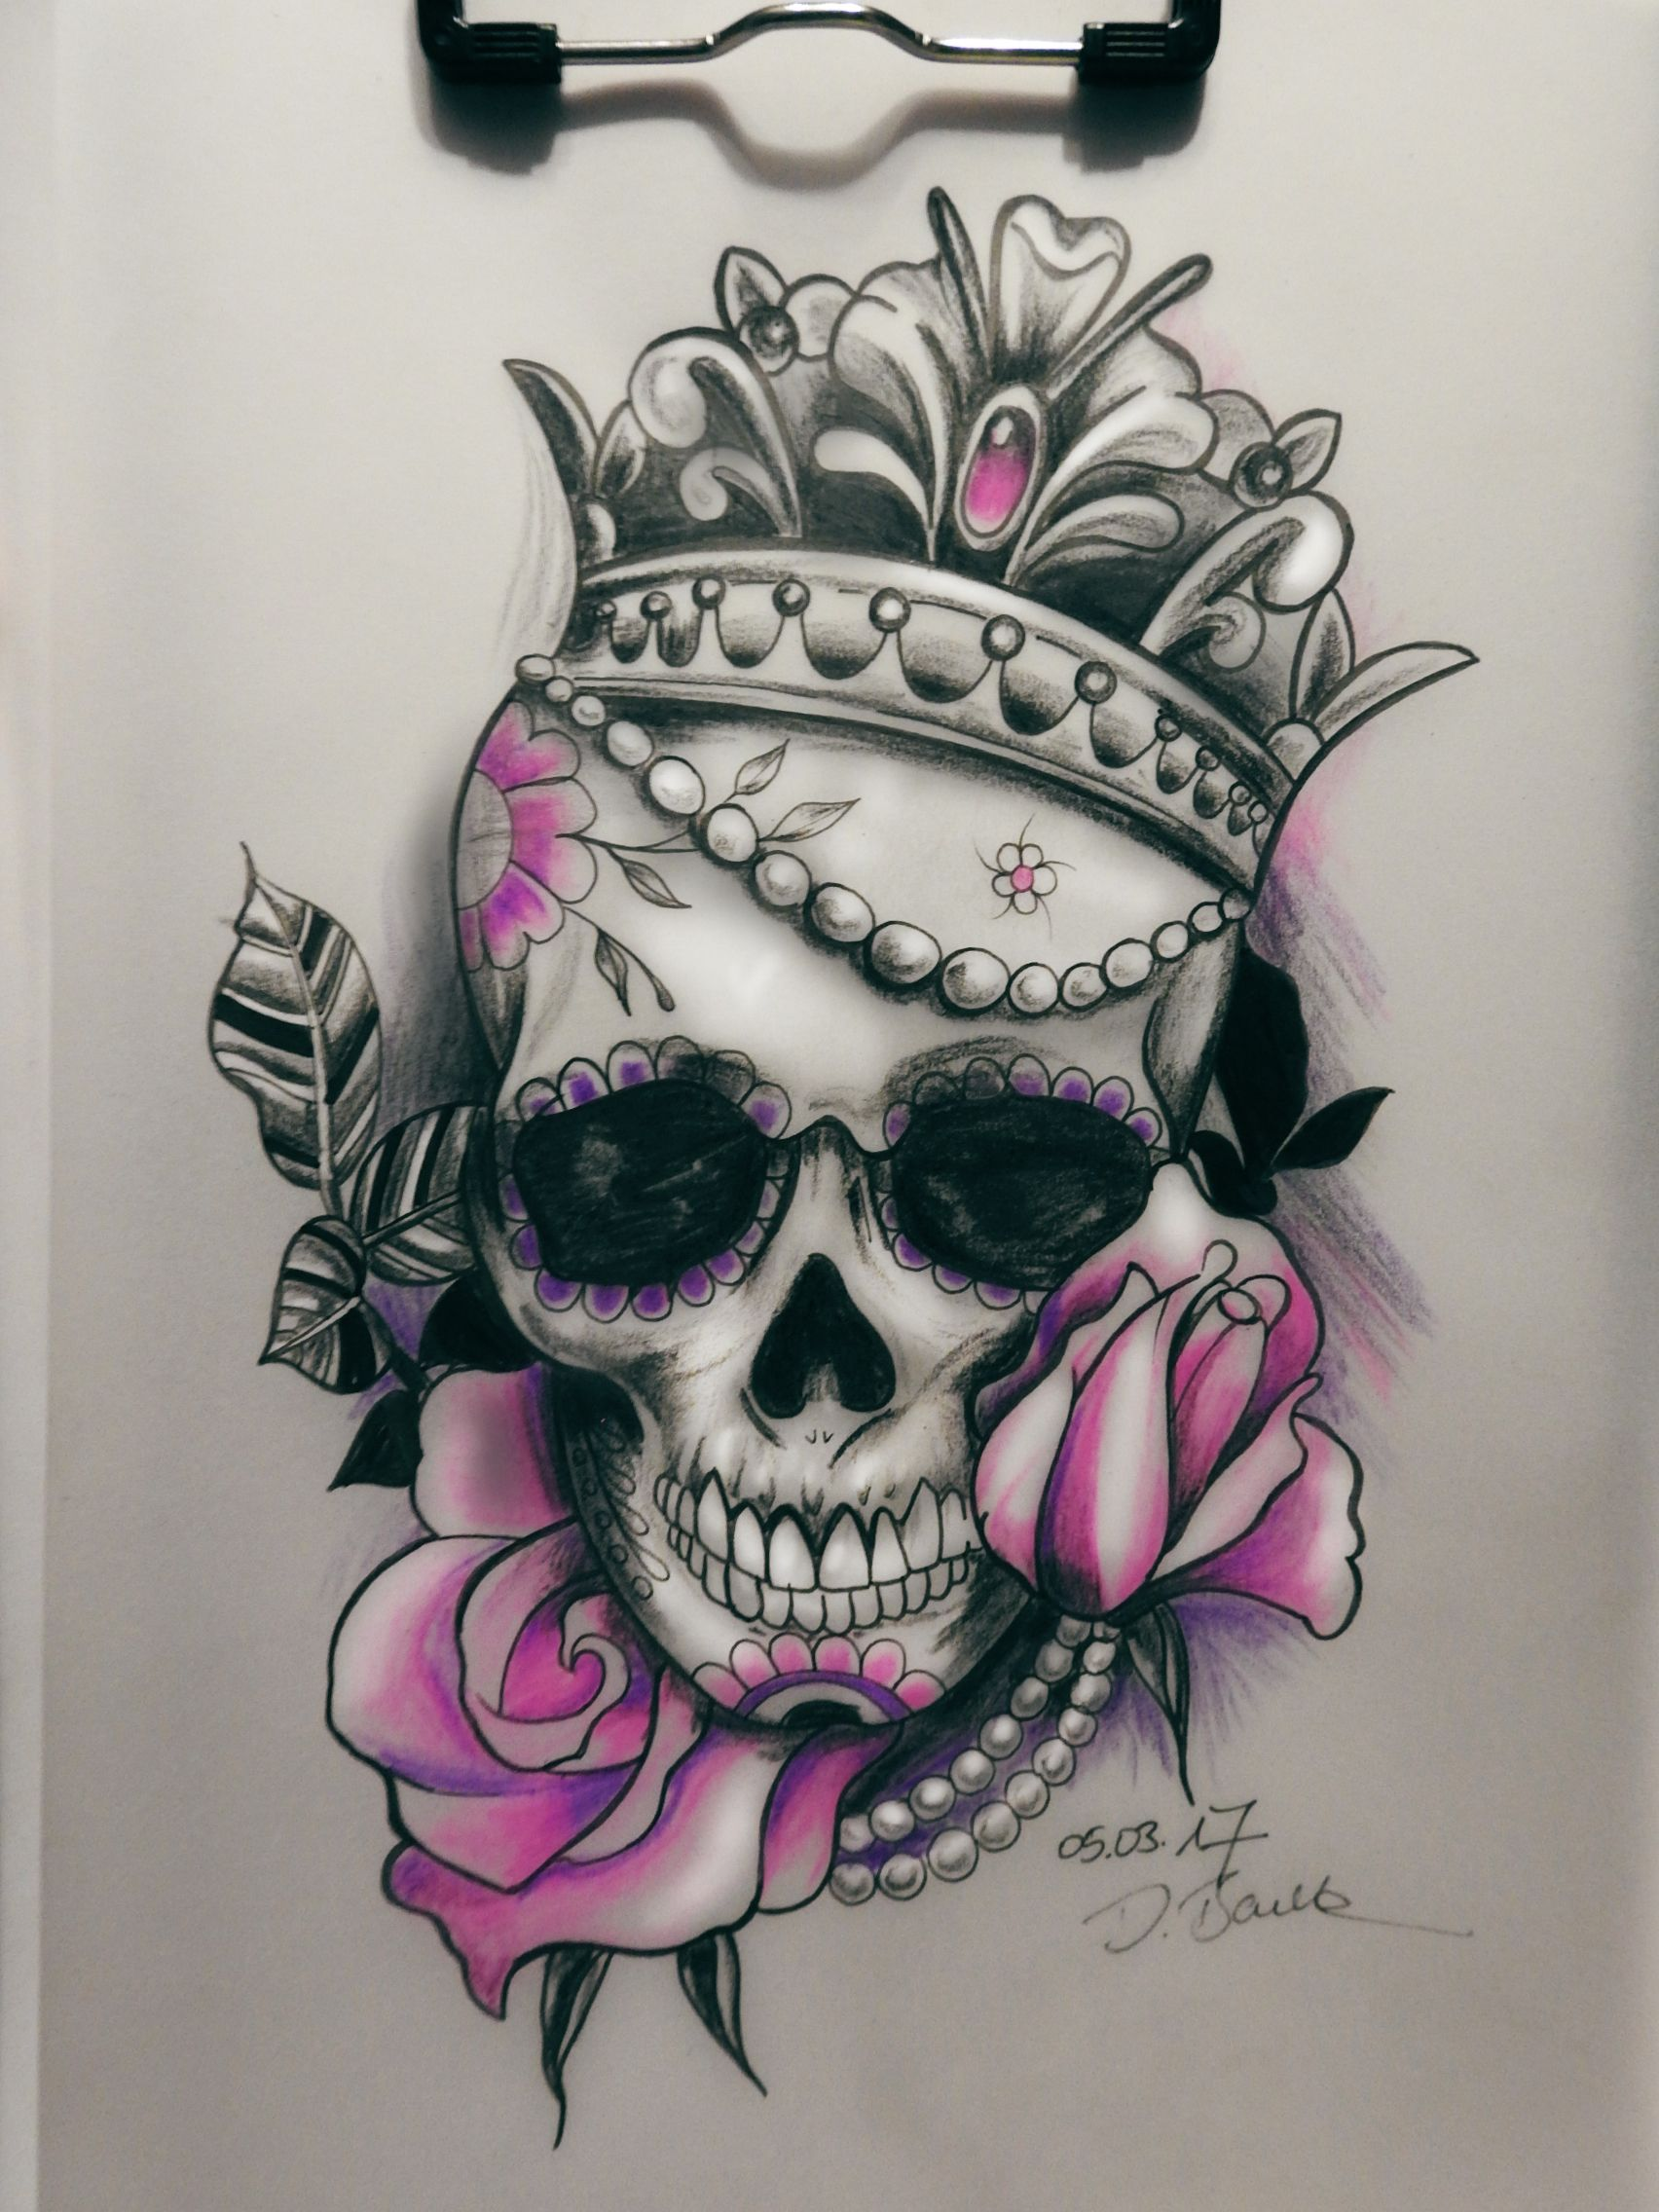 tattoo art design custom drawing pencil vorlage entwurf skull totenkopf diamanten. Black Bedroom Furniture Sets. Home Design Ideas